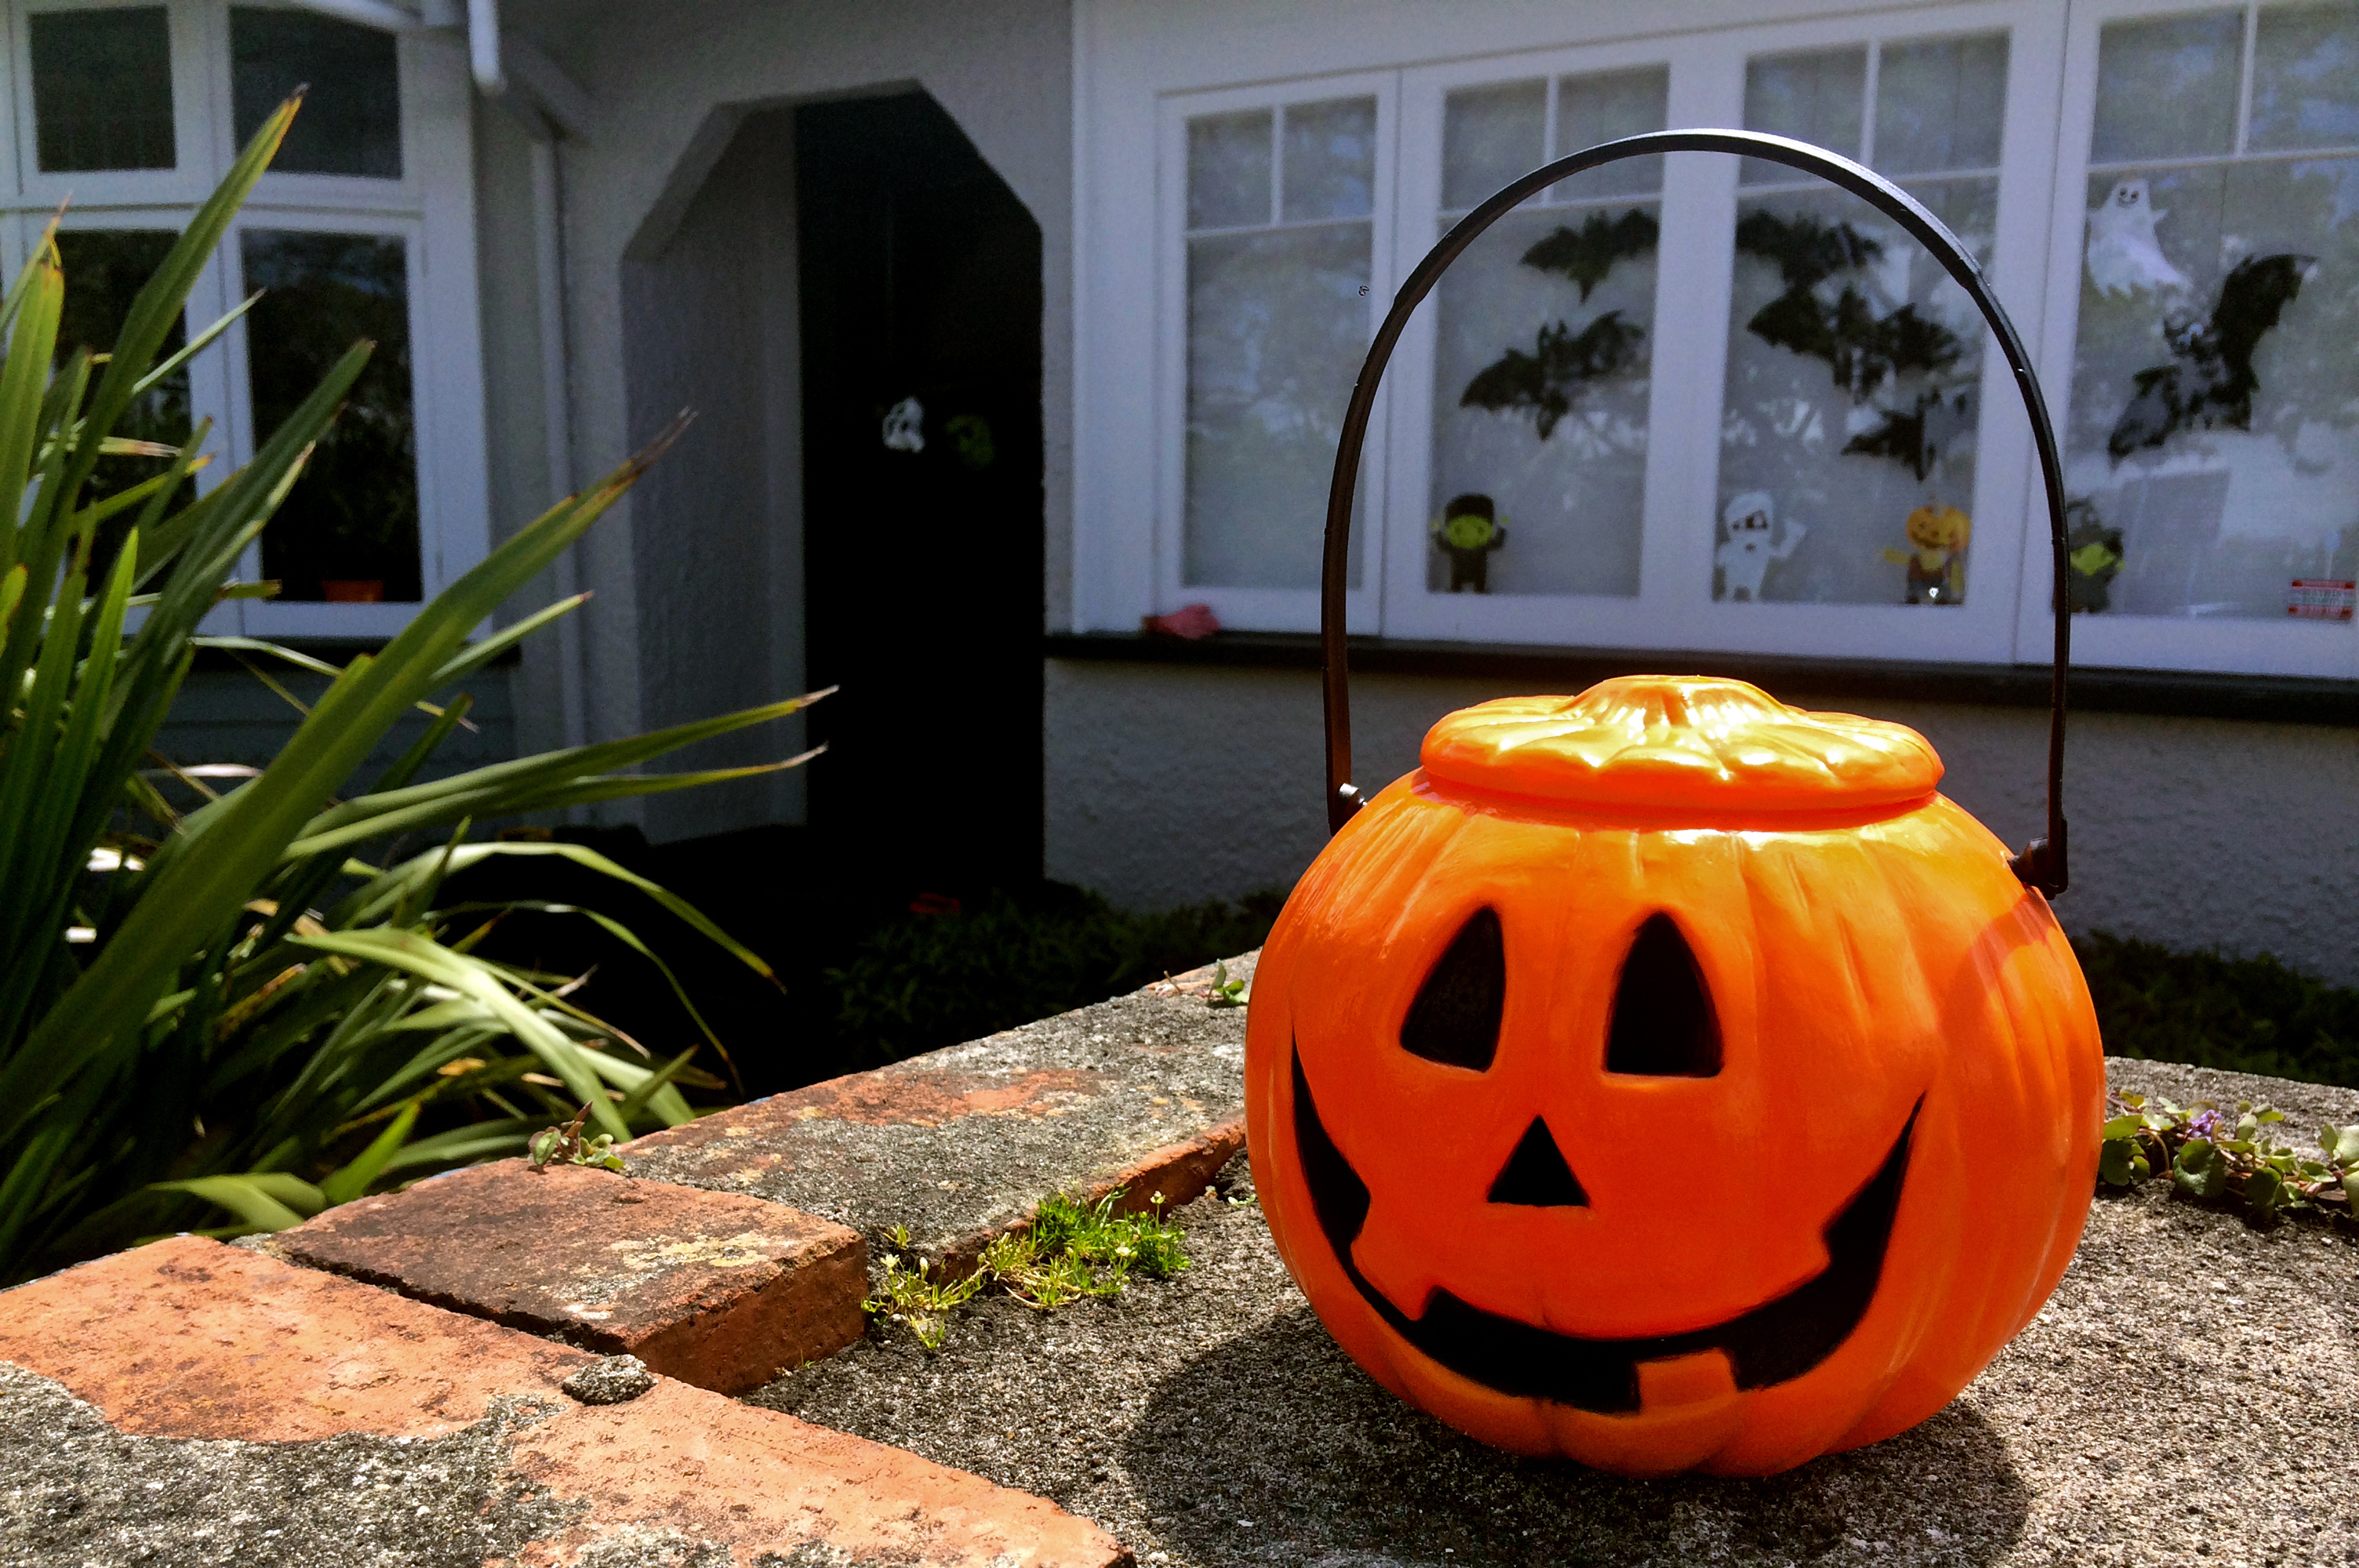 It's nearly Halloween - time to get ready for guising! (iStock)